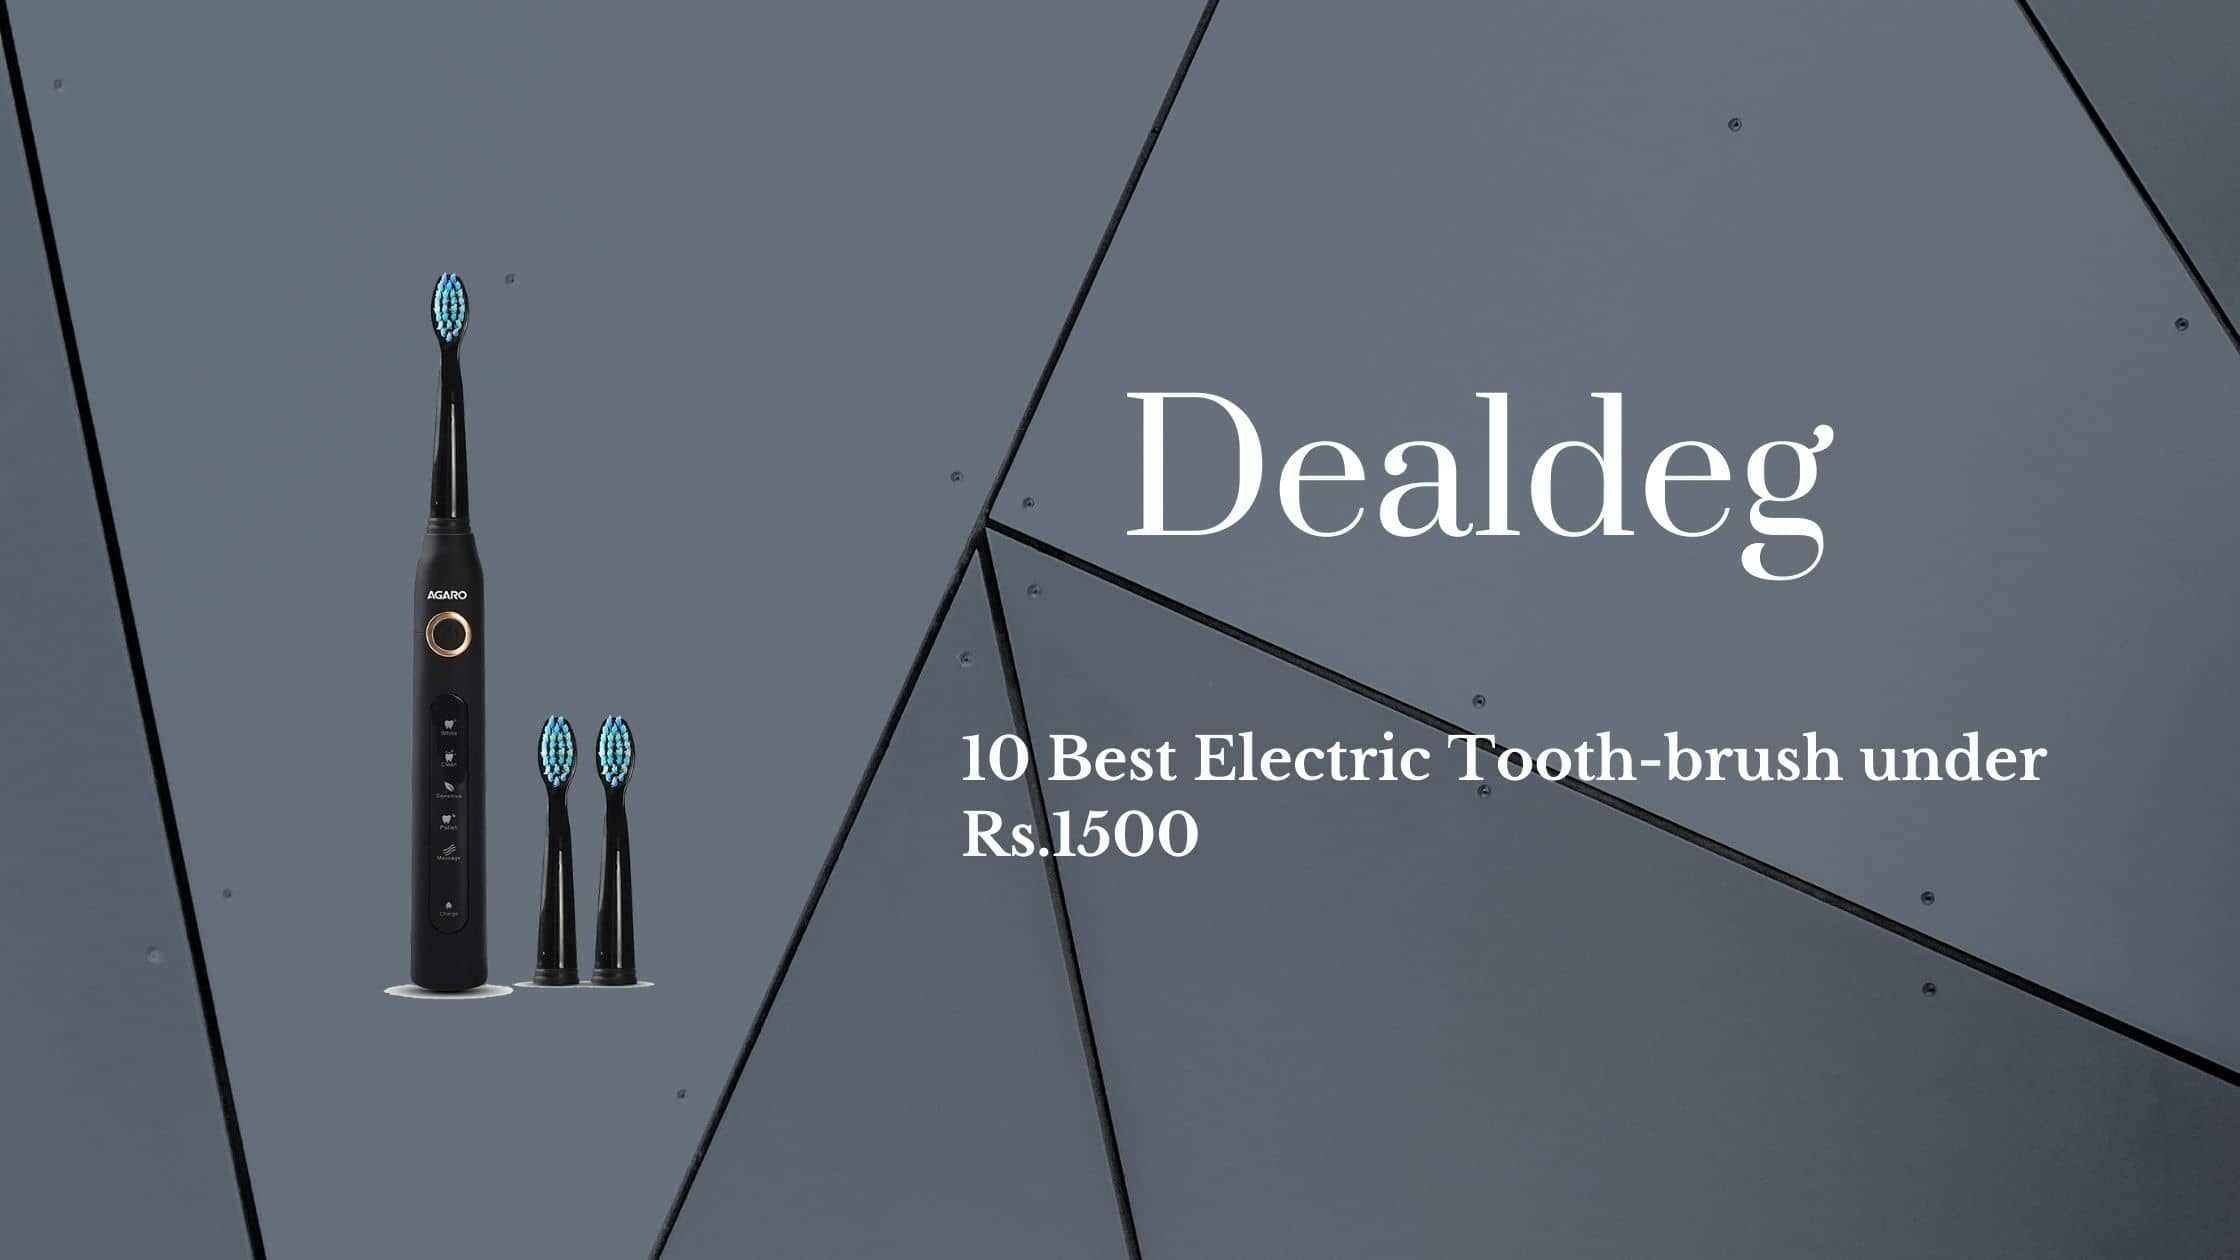 10 Best Electric Tooth-brush under Rs.1500